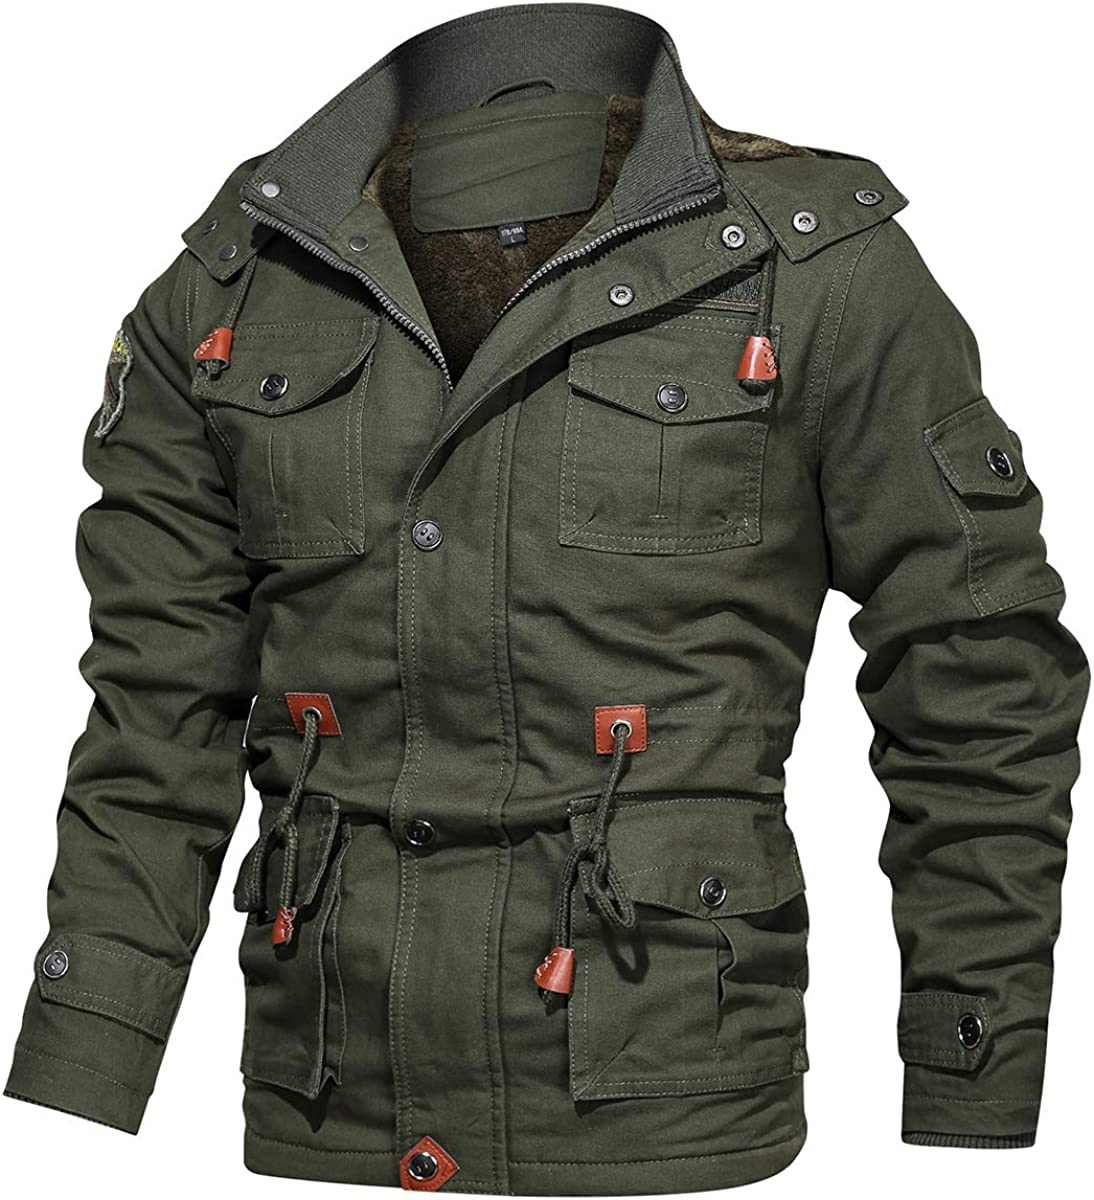 CARWORNIC Men's Winter Warm Military Jacket Thicken Windbreaker Cotton Cargo Parka Coat with Removable Hood: Clothing